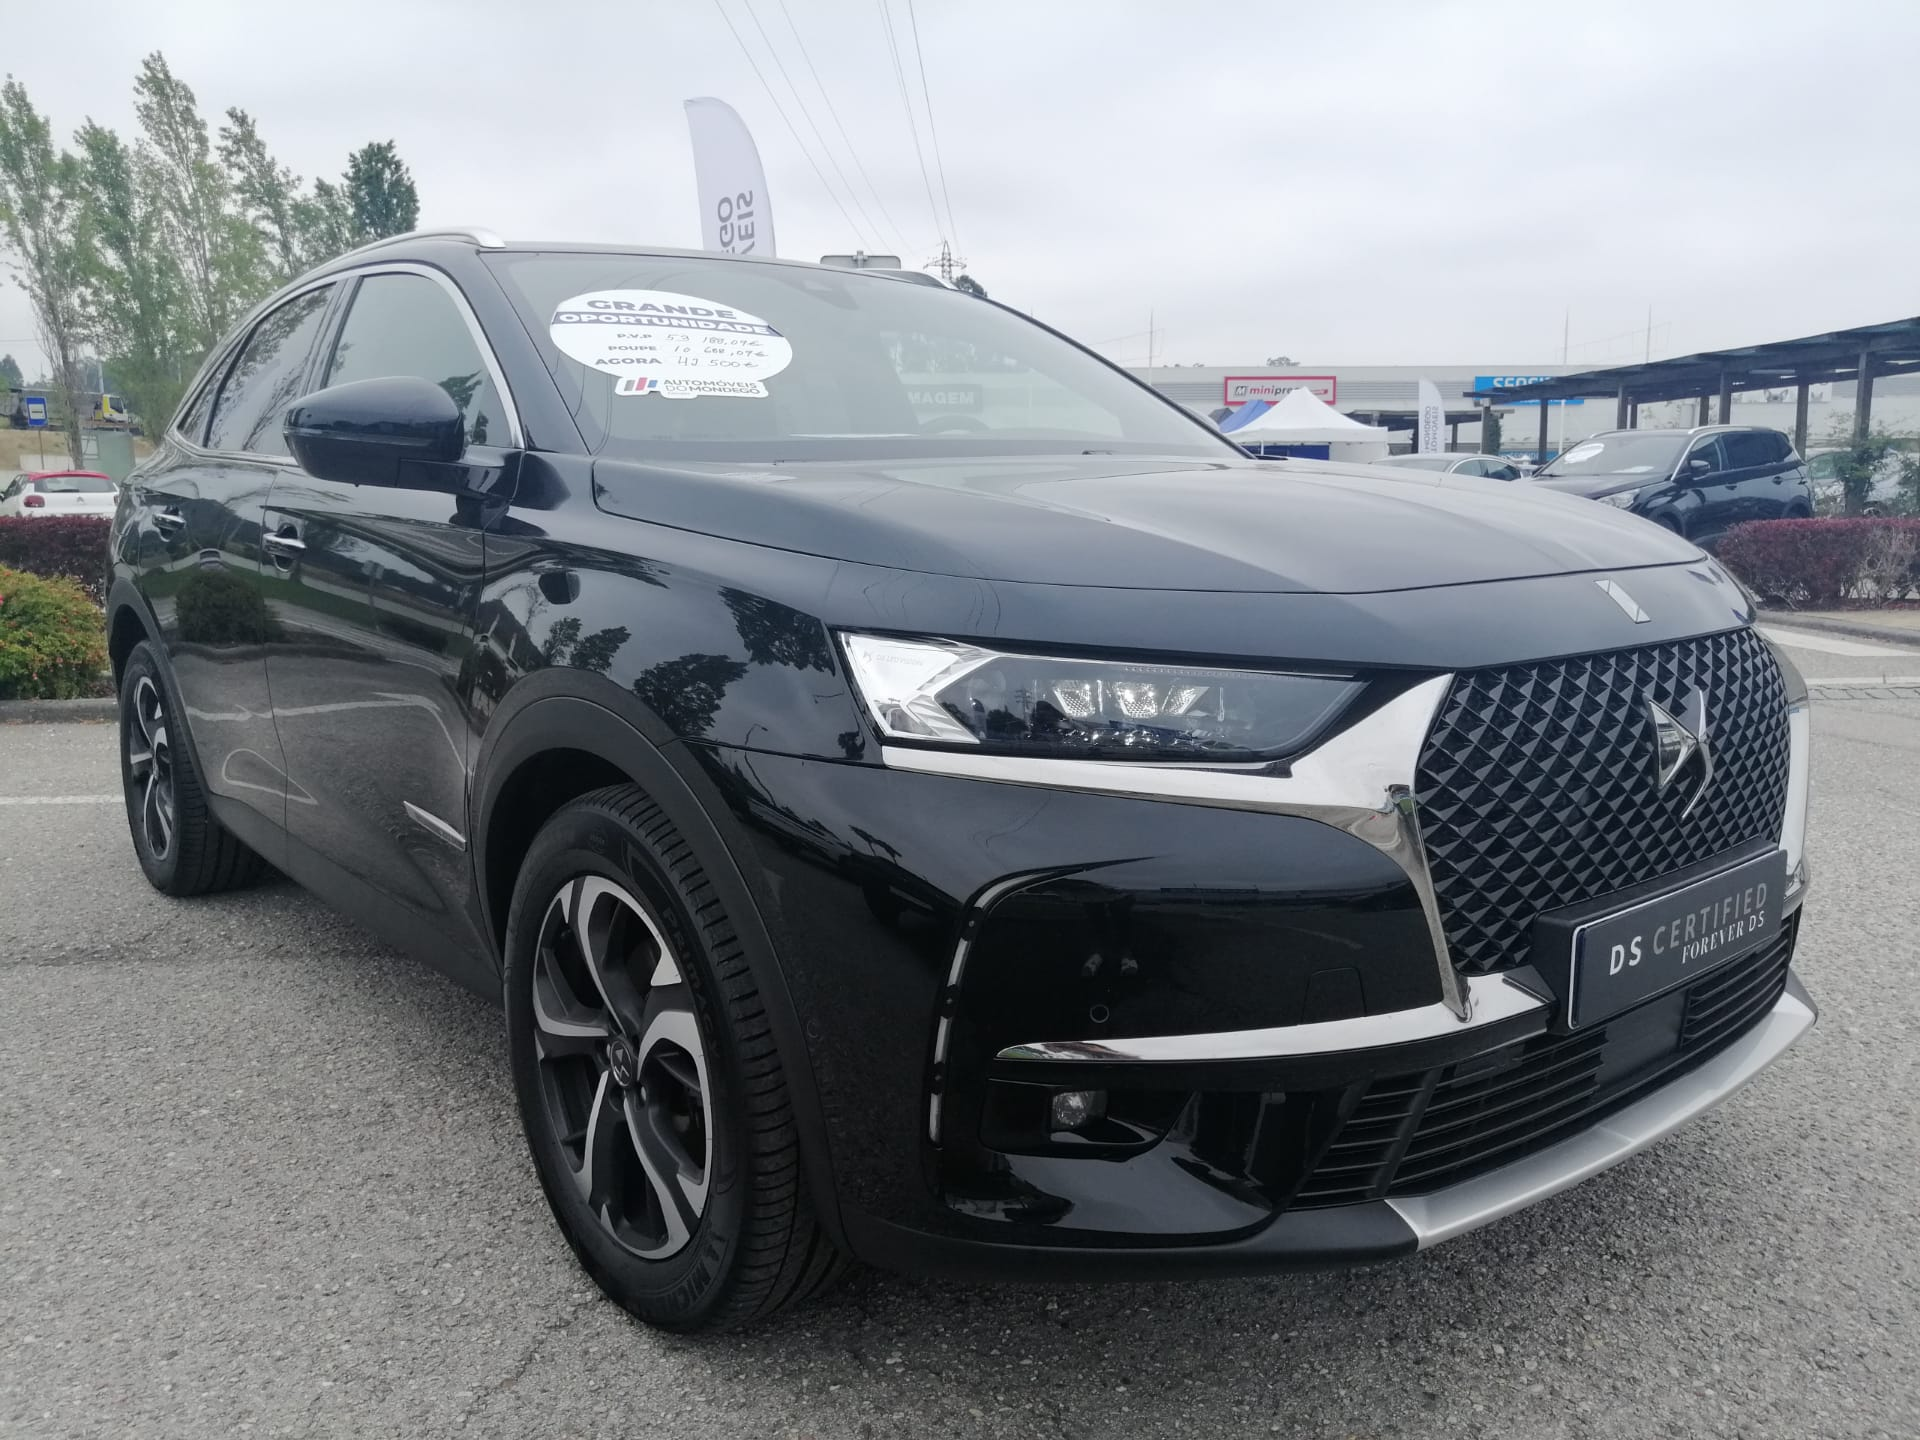 DS 7 CROSSBACK 1.5 BlueHDi 130 Automatic So Chic AM12